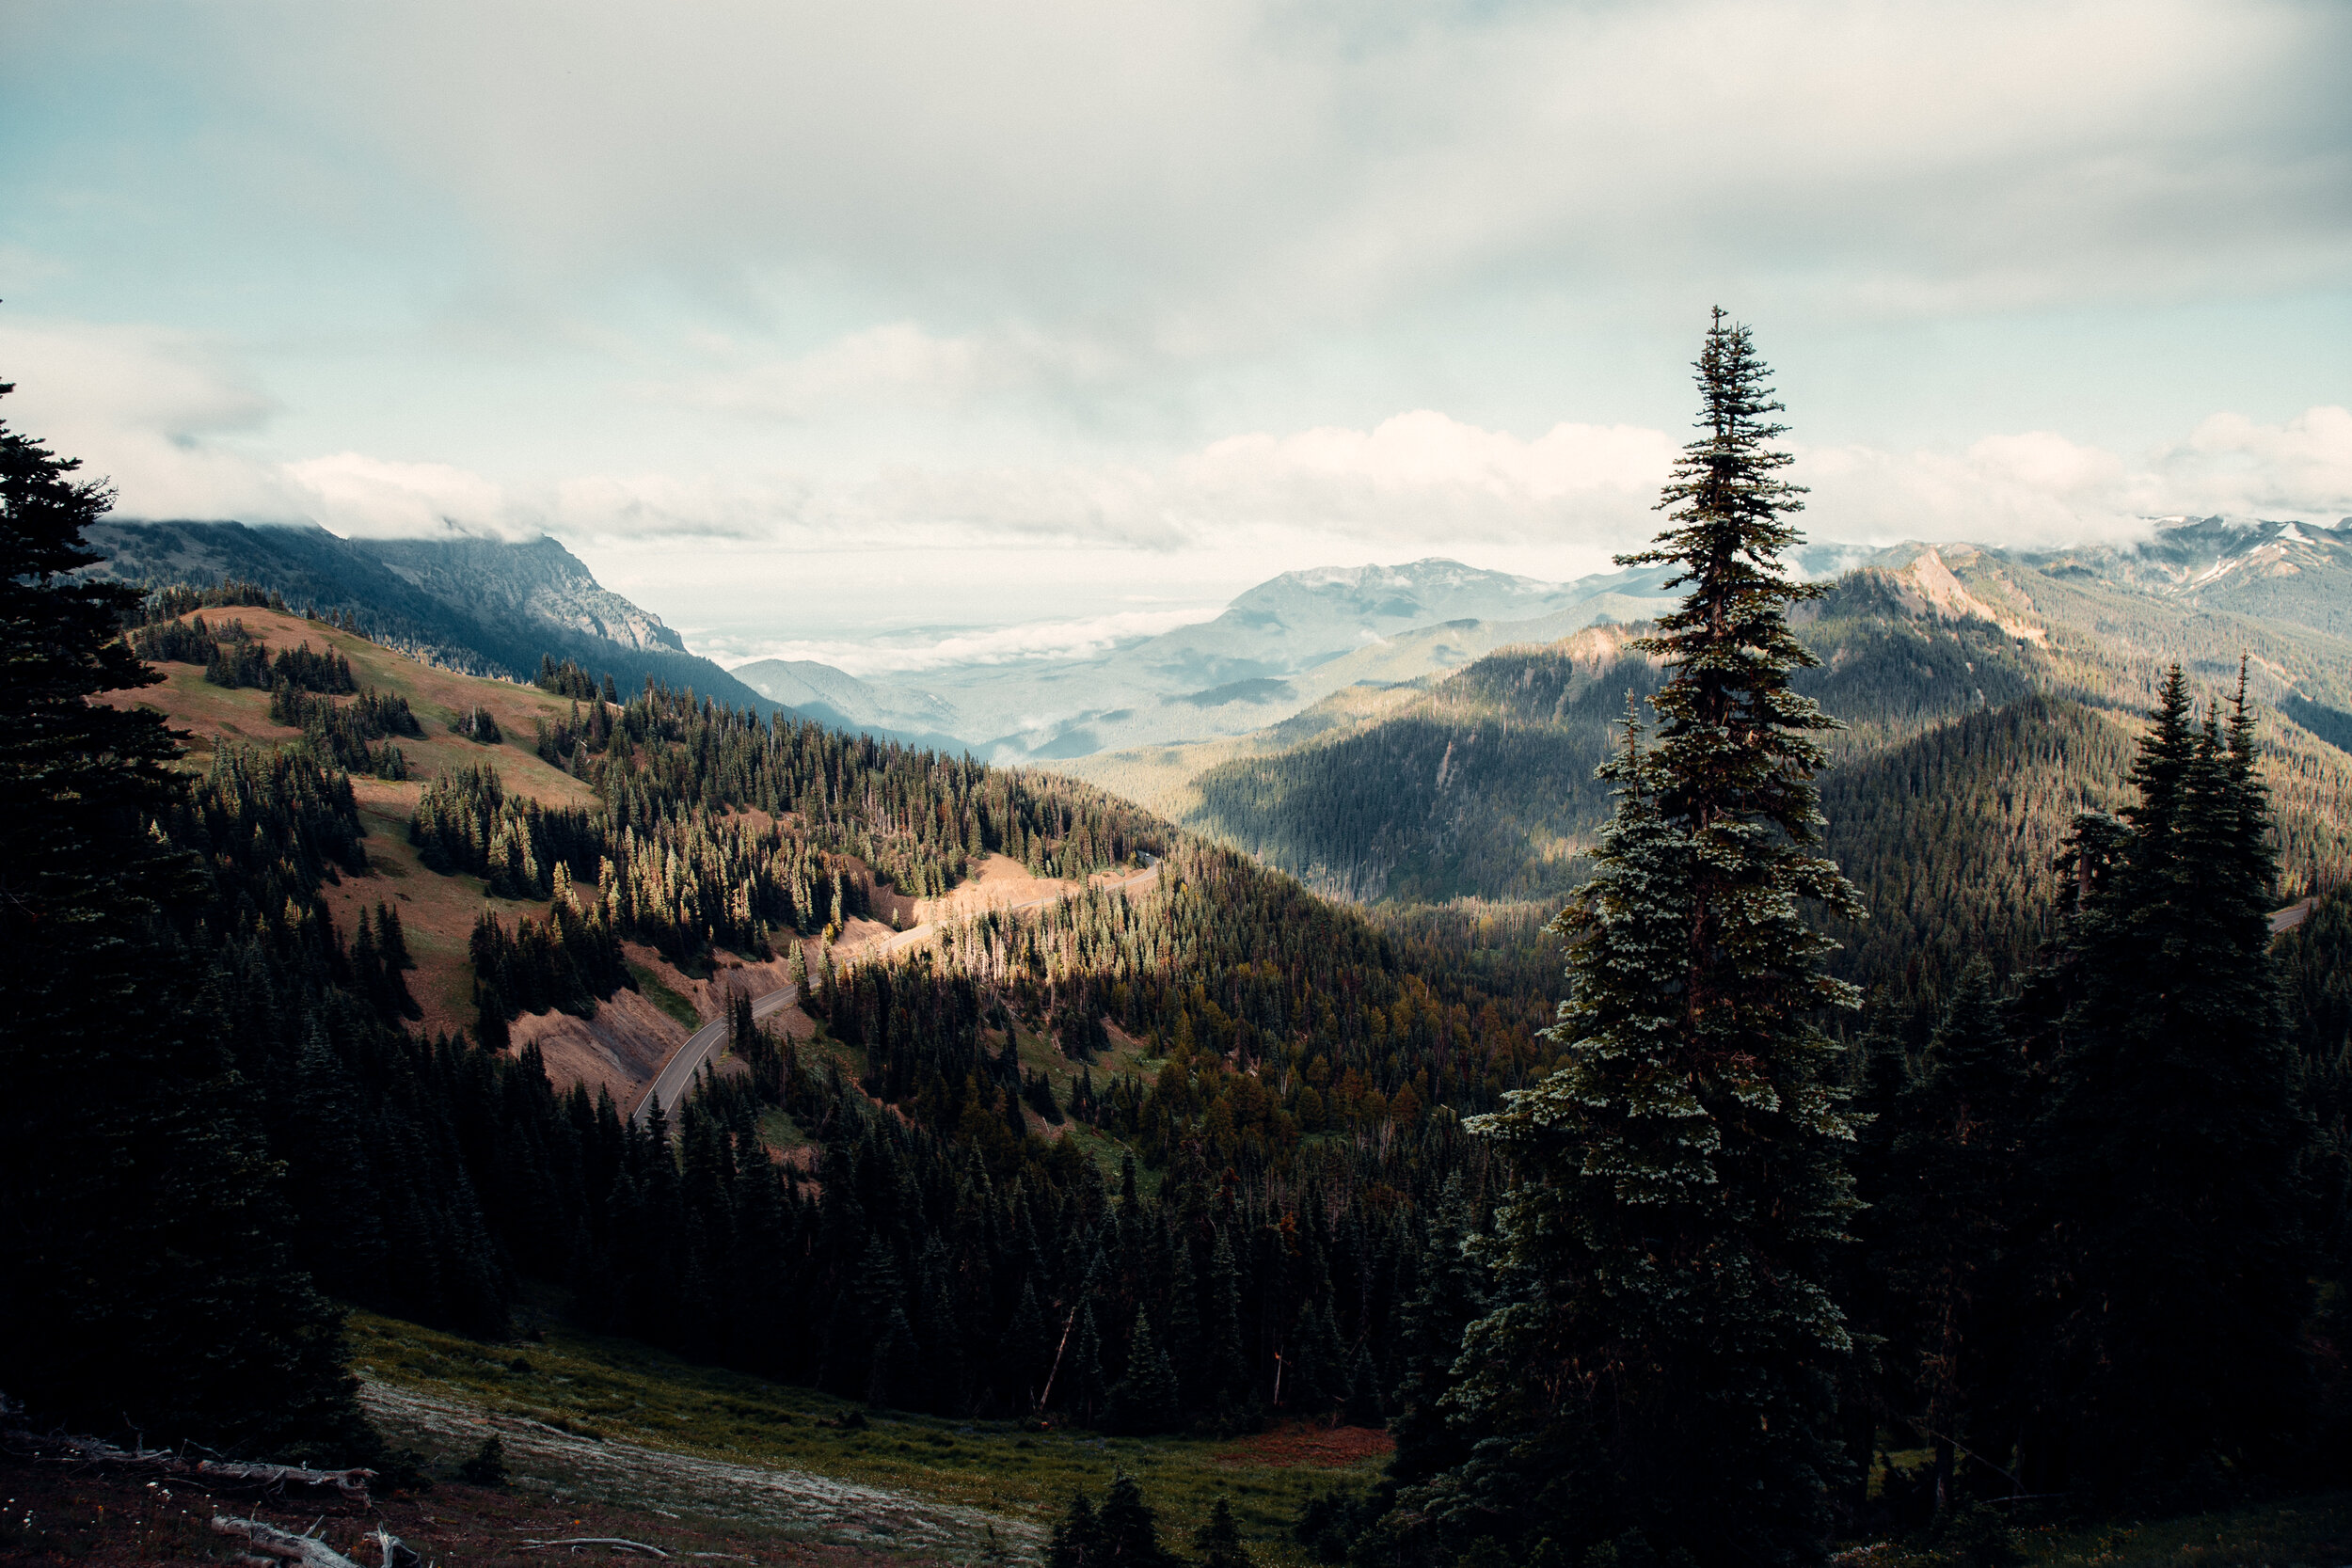 view of mountains and pine trees